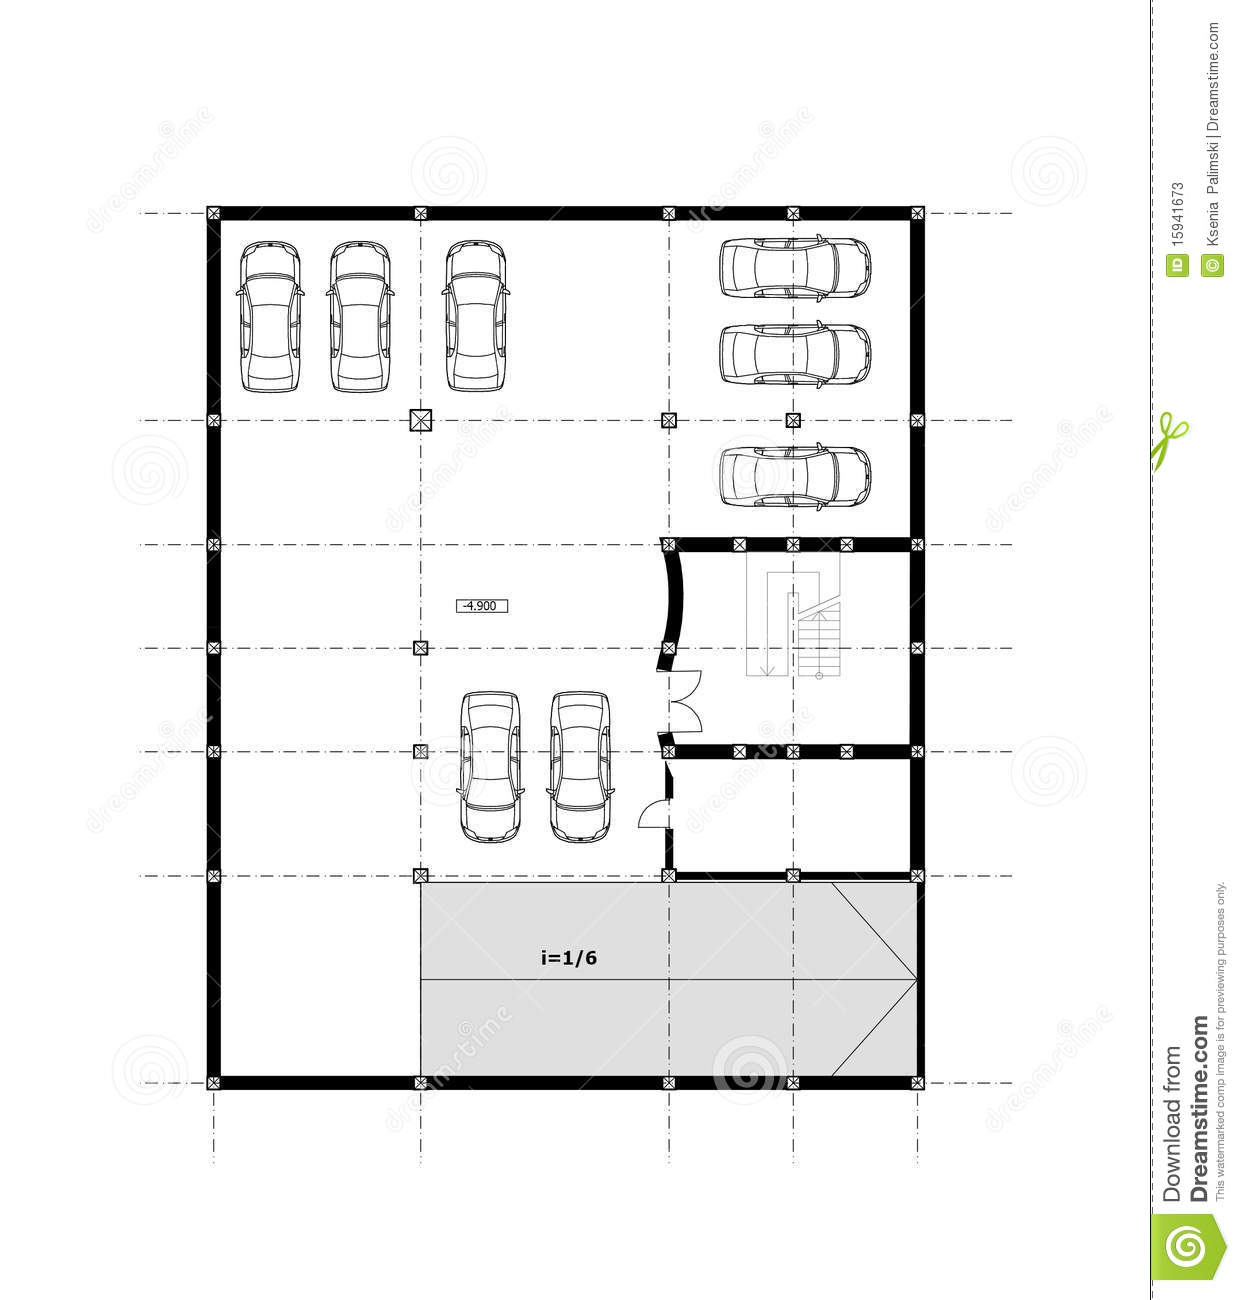 Retrait De Plan Architectural De Dao Illustration Stock